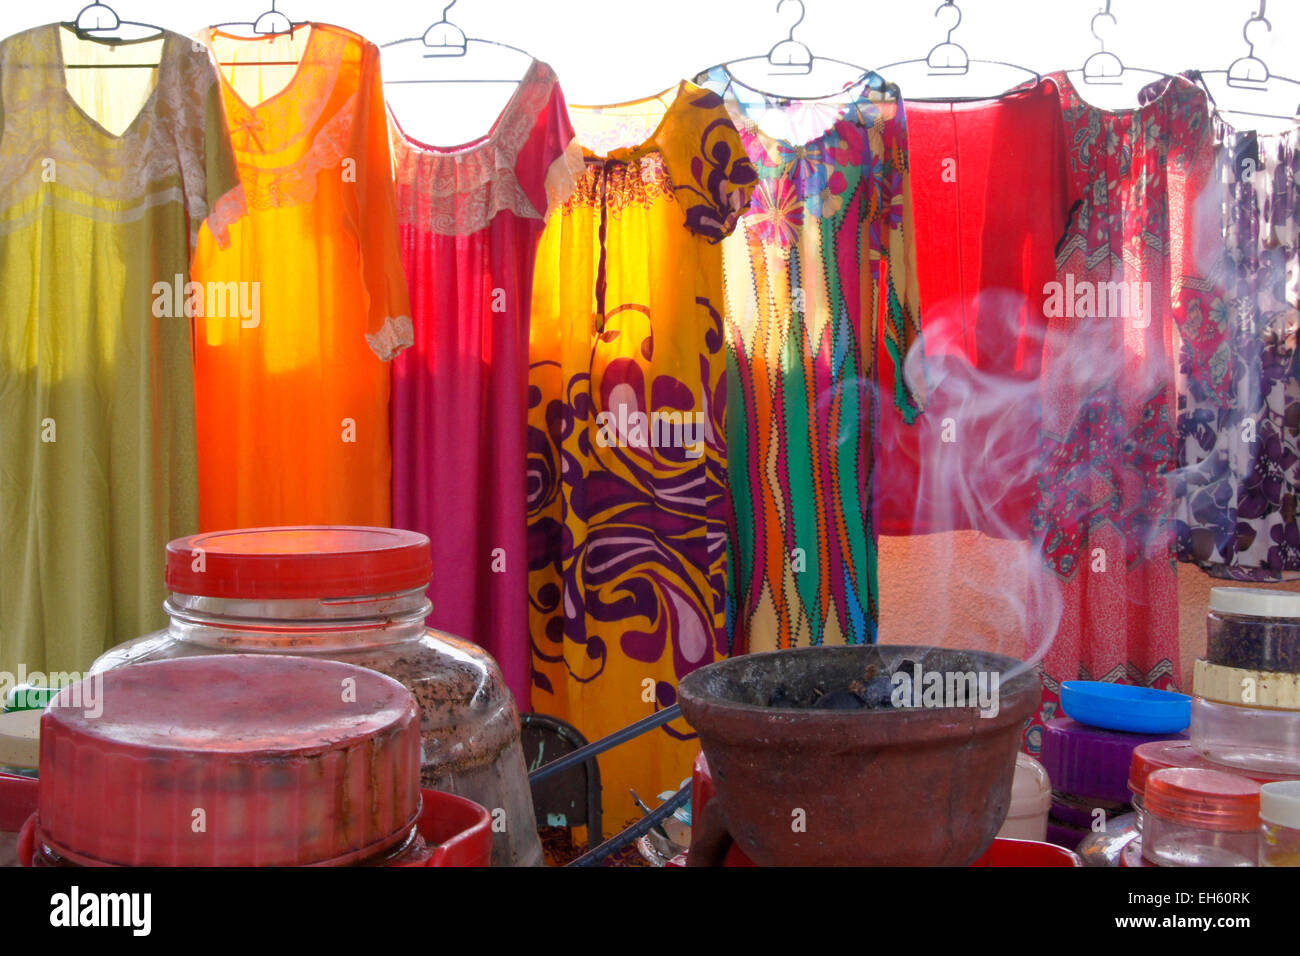 Gowns for sale at Wednesday (women's) market, Ibra, Oman - Stock Image